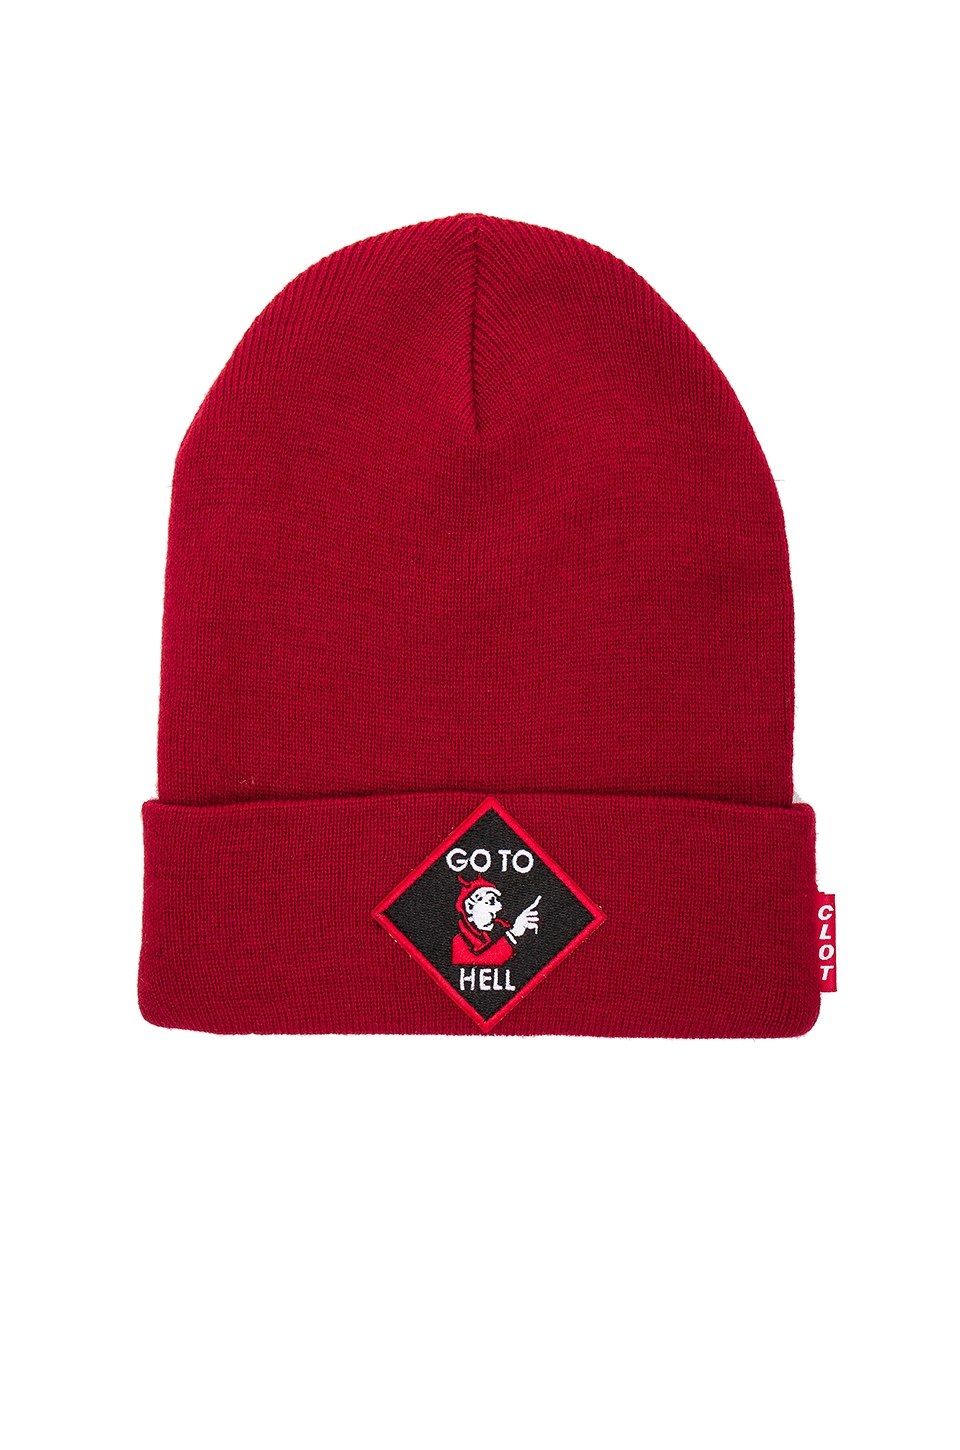 Go To Hell Beanie by CLOT